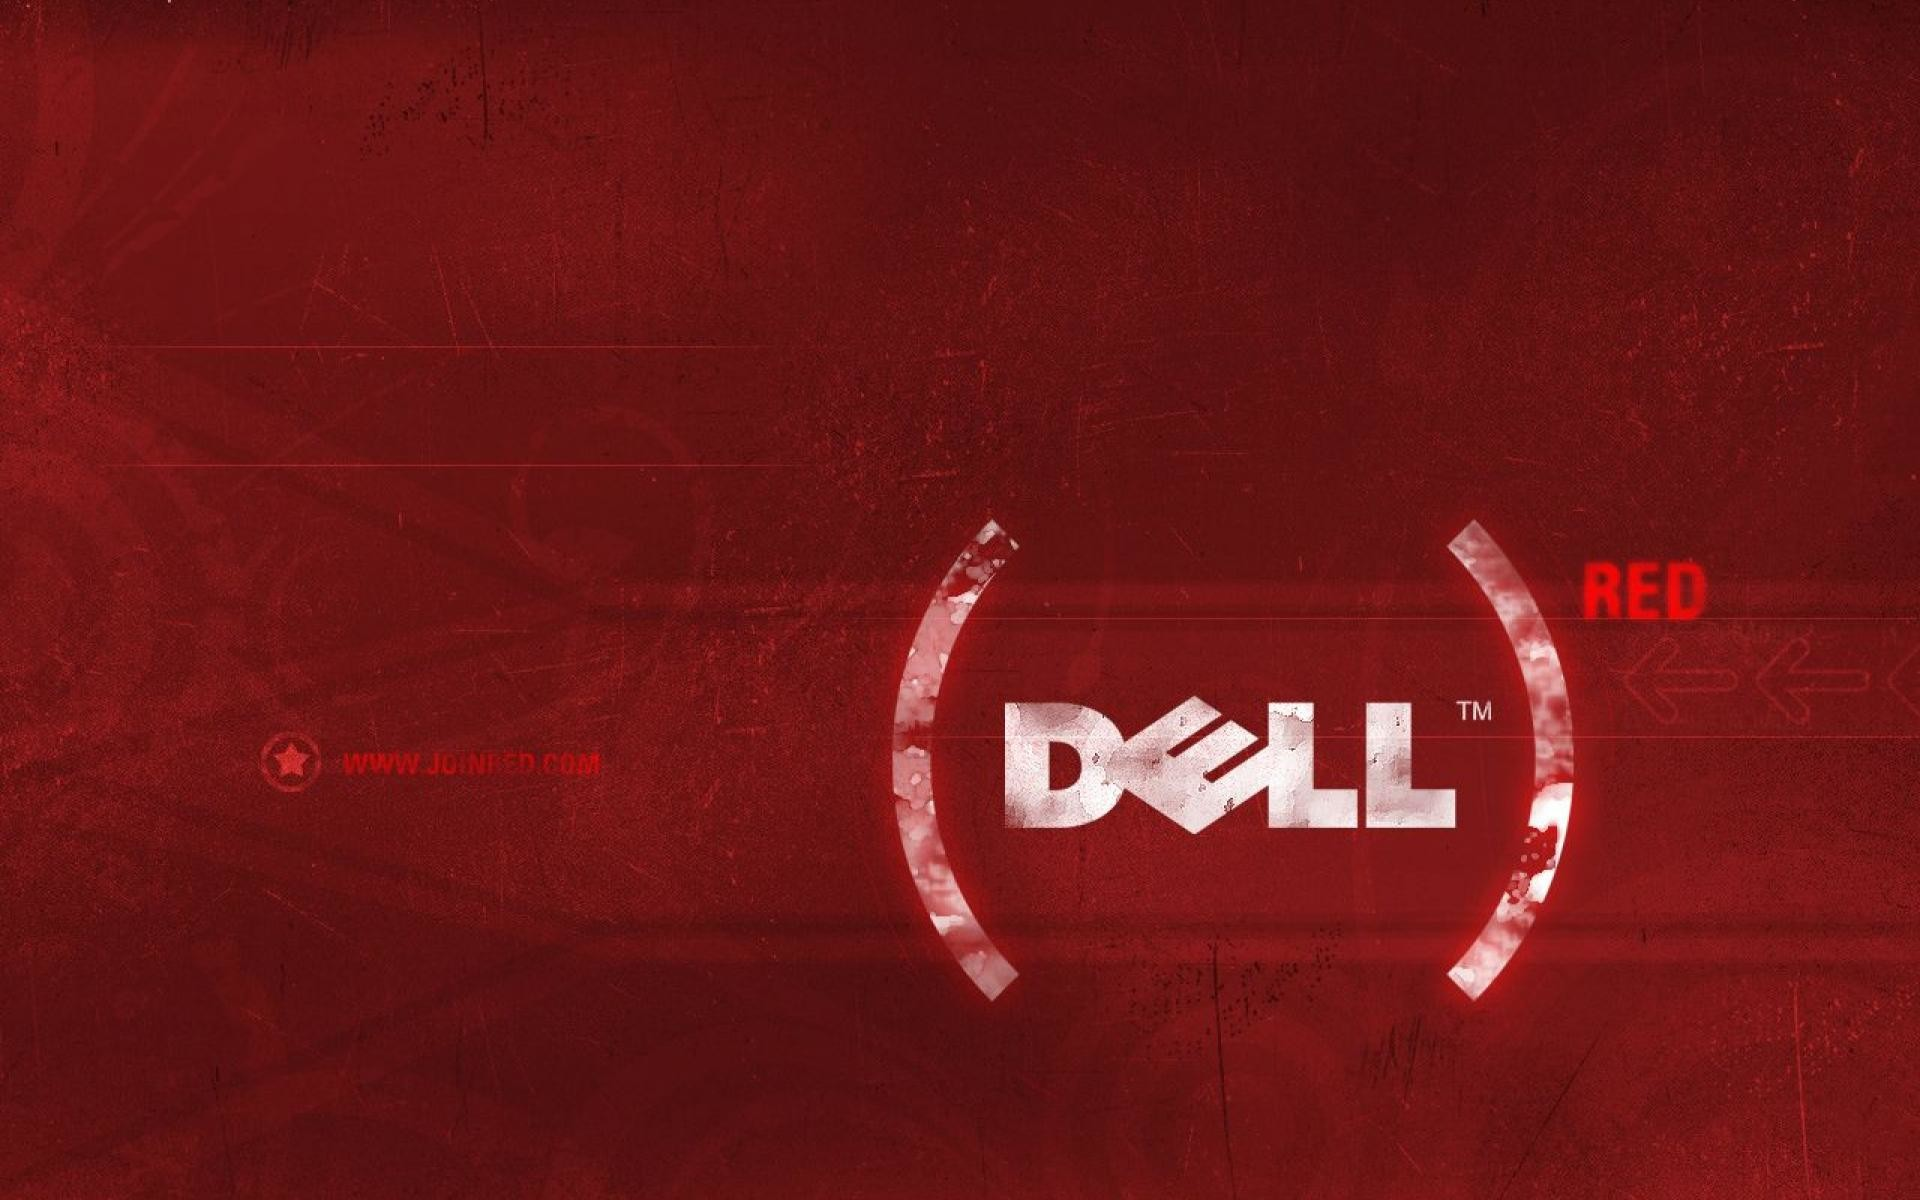 Dell XPS Red Label Wallpaper